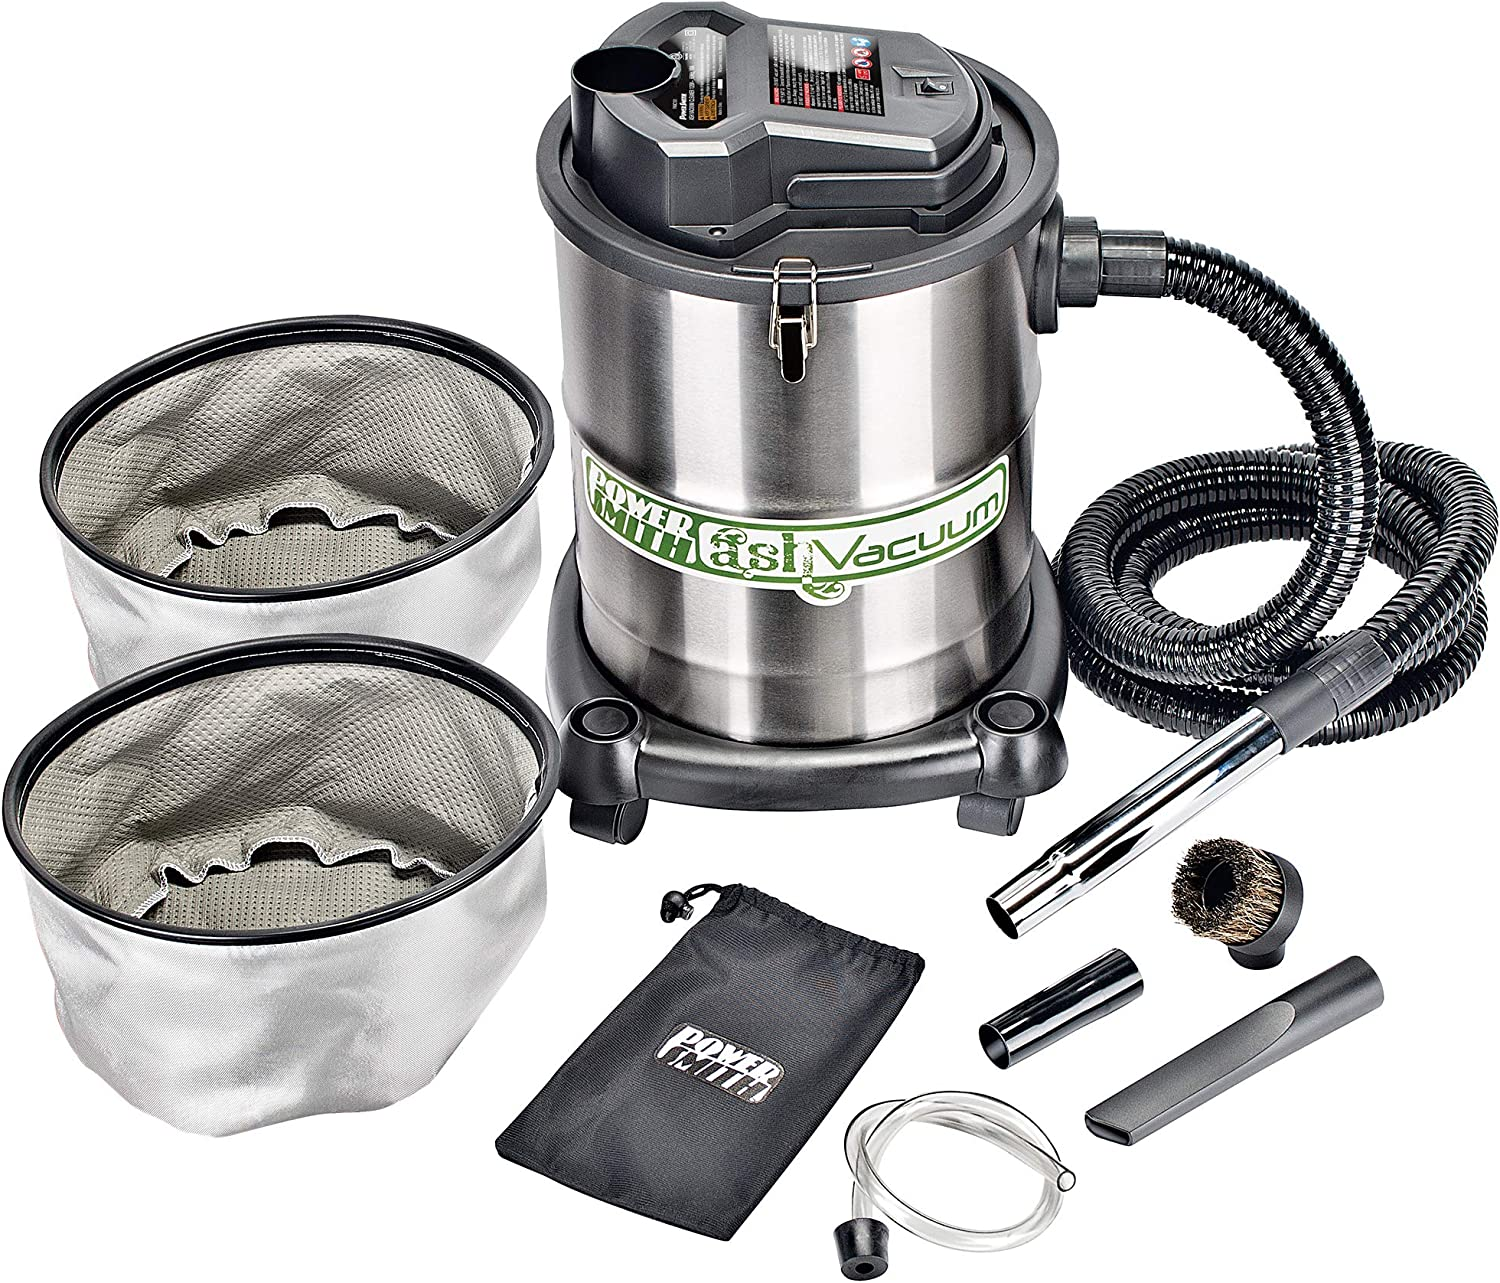 PowerSmith PAVC102 10 Amp 4 Gallon All-In-One Ash and Shop Vacuum/Blower with 10' Hose, Wheeled Base, Crevice Tool, Brush Nozzle, Pellet Stove Hose, 16' Power Cord, 1 1/4